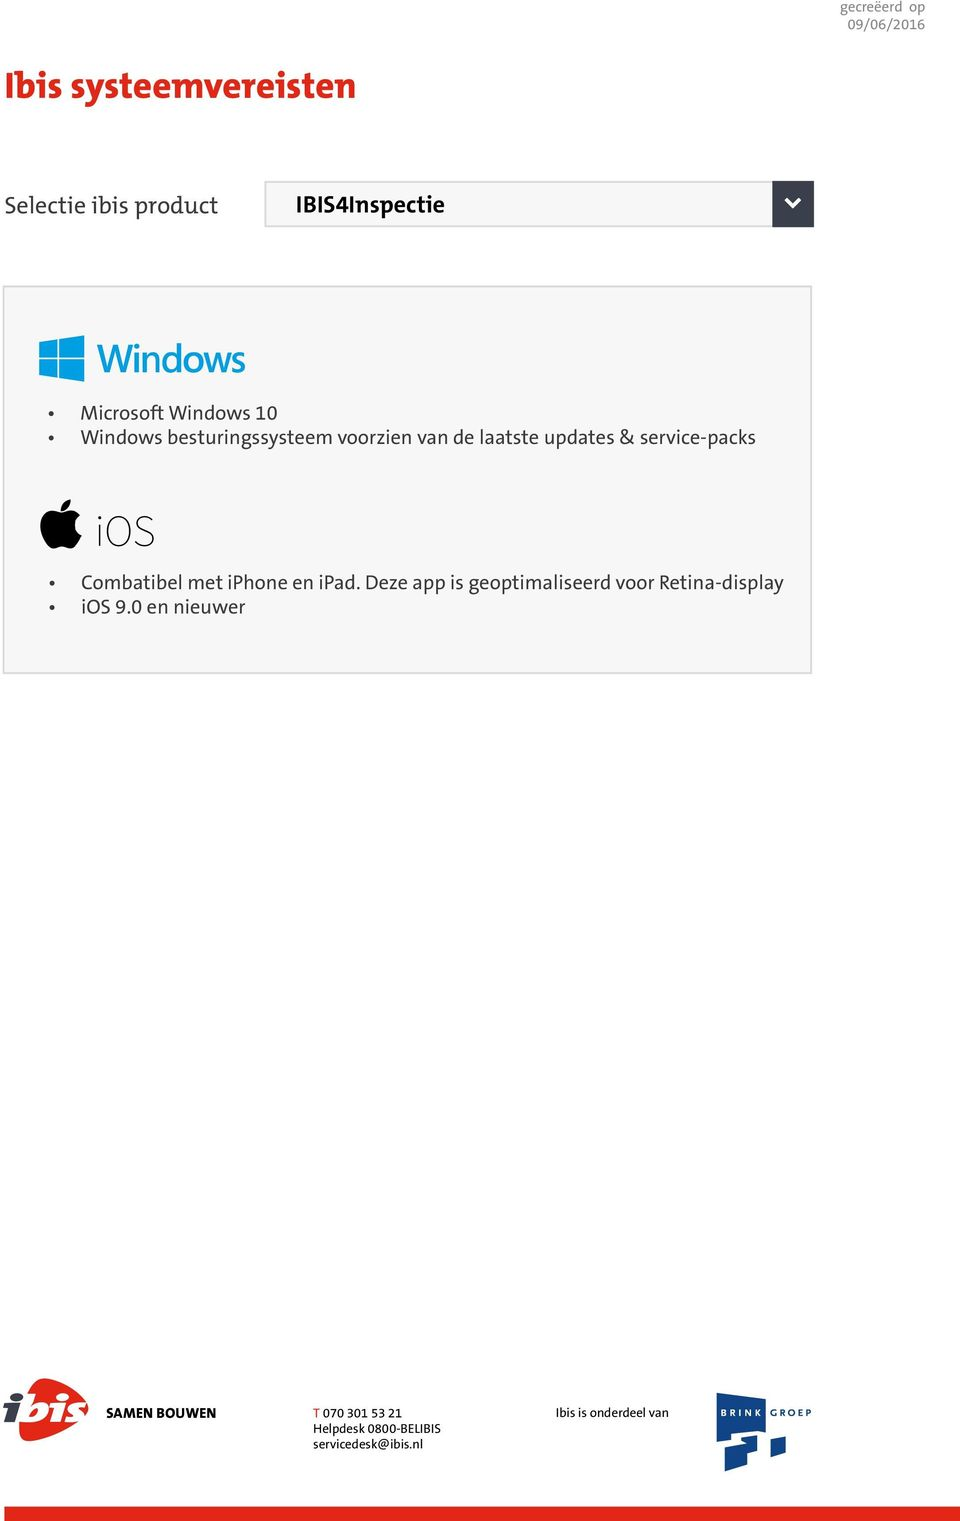 service-packs ios Combatibel met iphone en ipad.